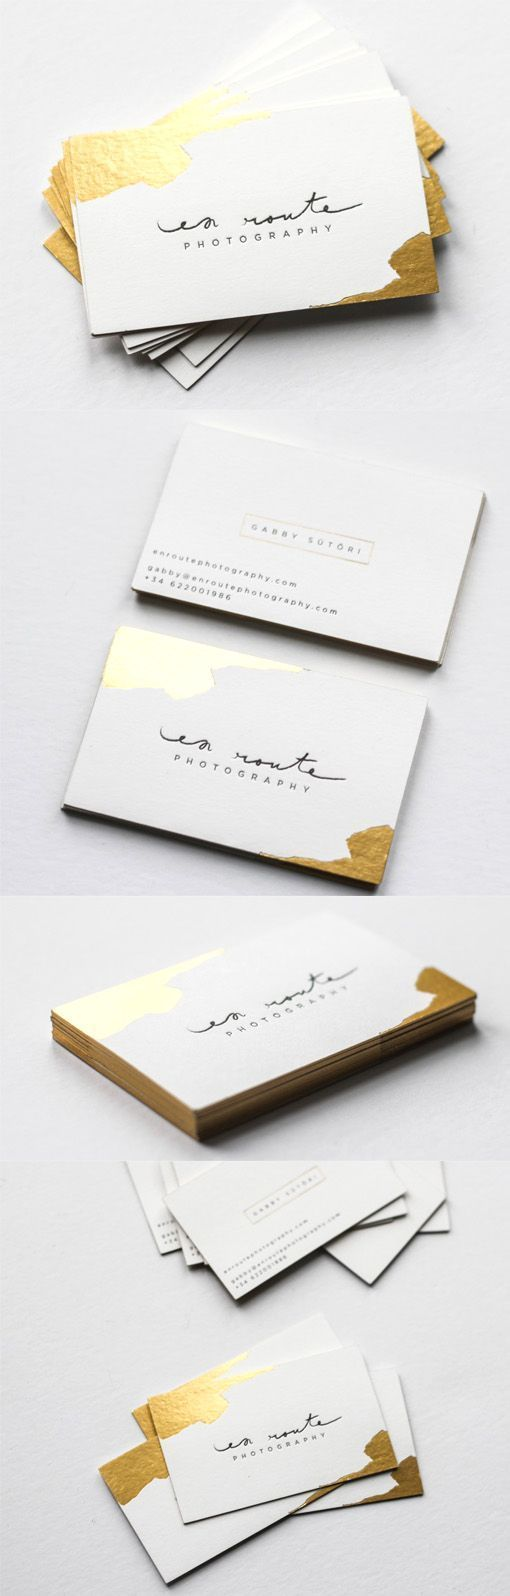 En Route Photography #business #card. I love the use of the gold foil like the corners were dipped in liquid gold. Modern, elegant photographer stationary.     www.graphicsmob.co.uk